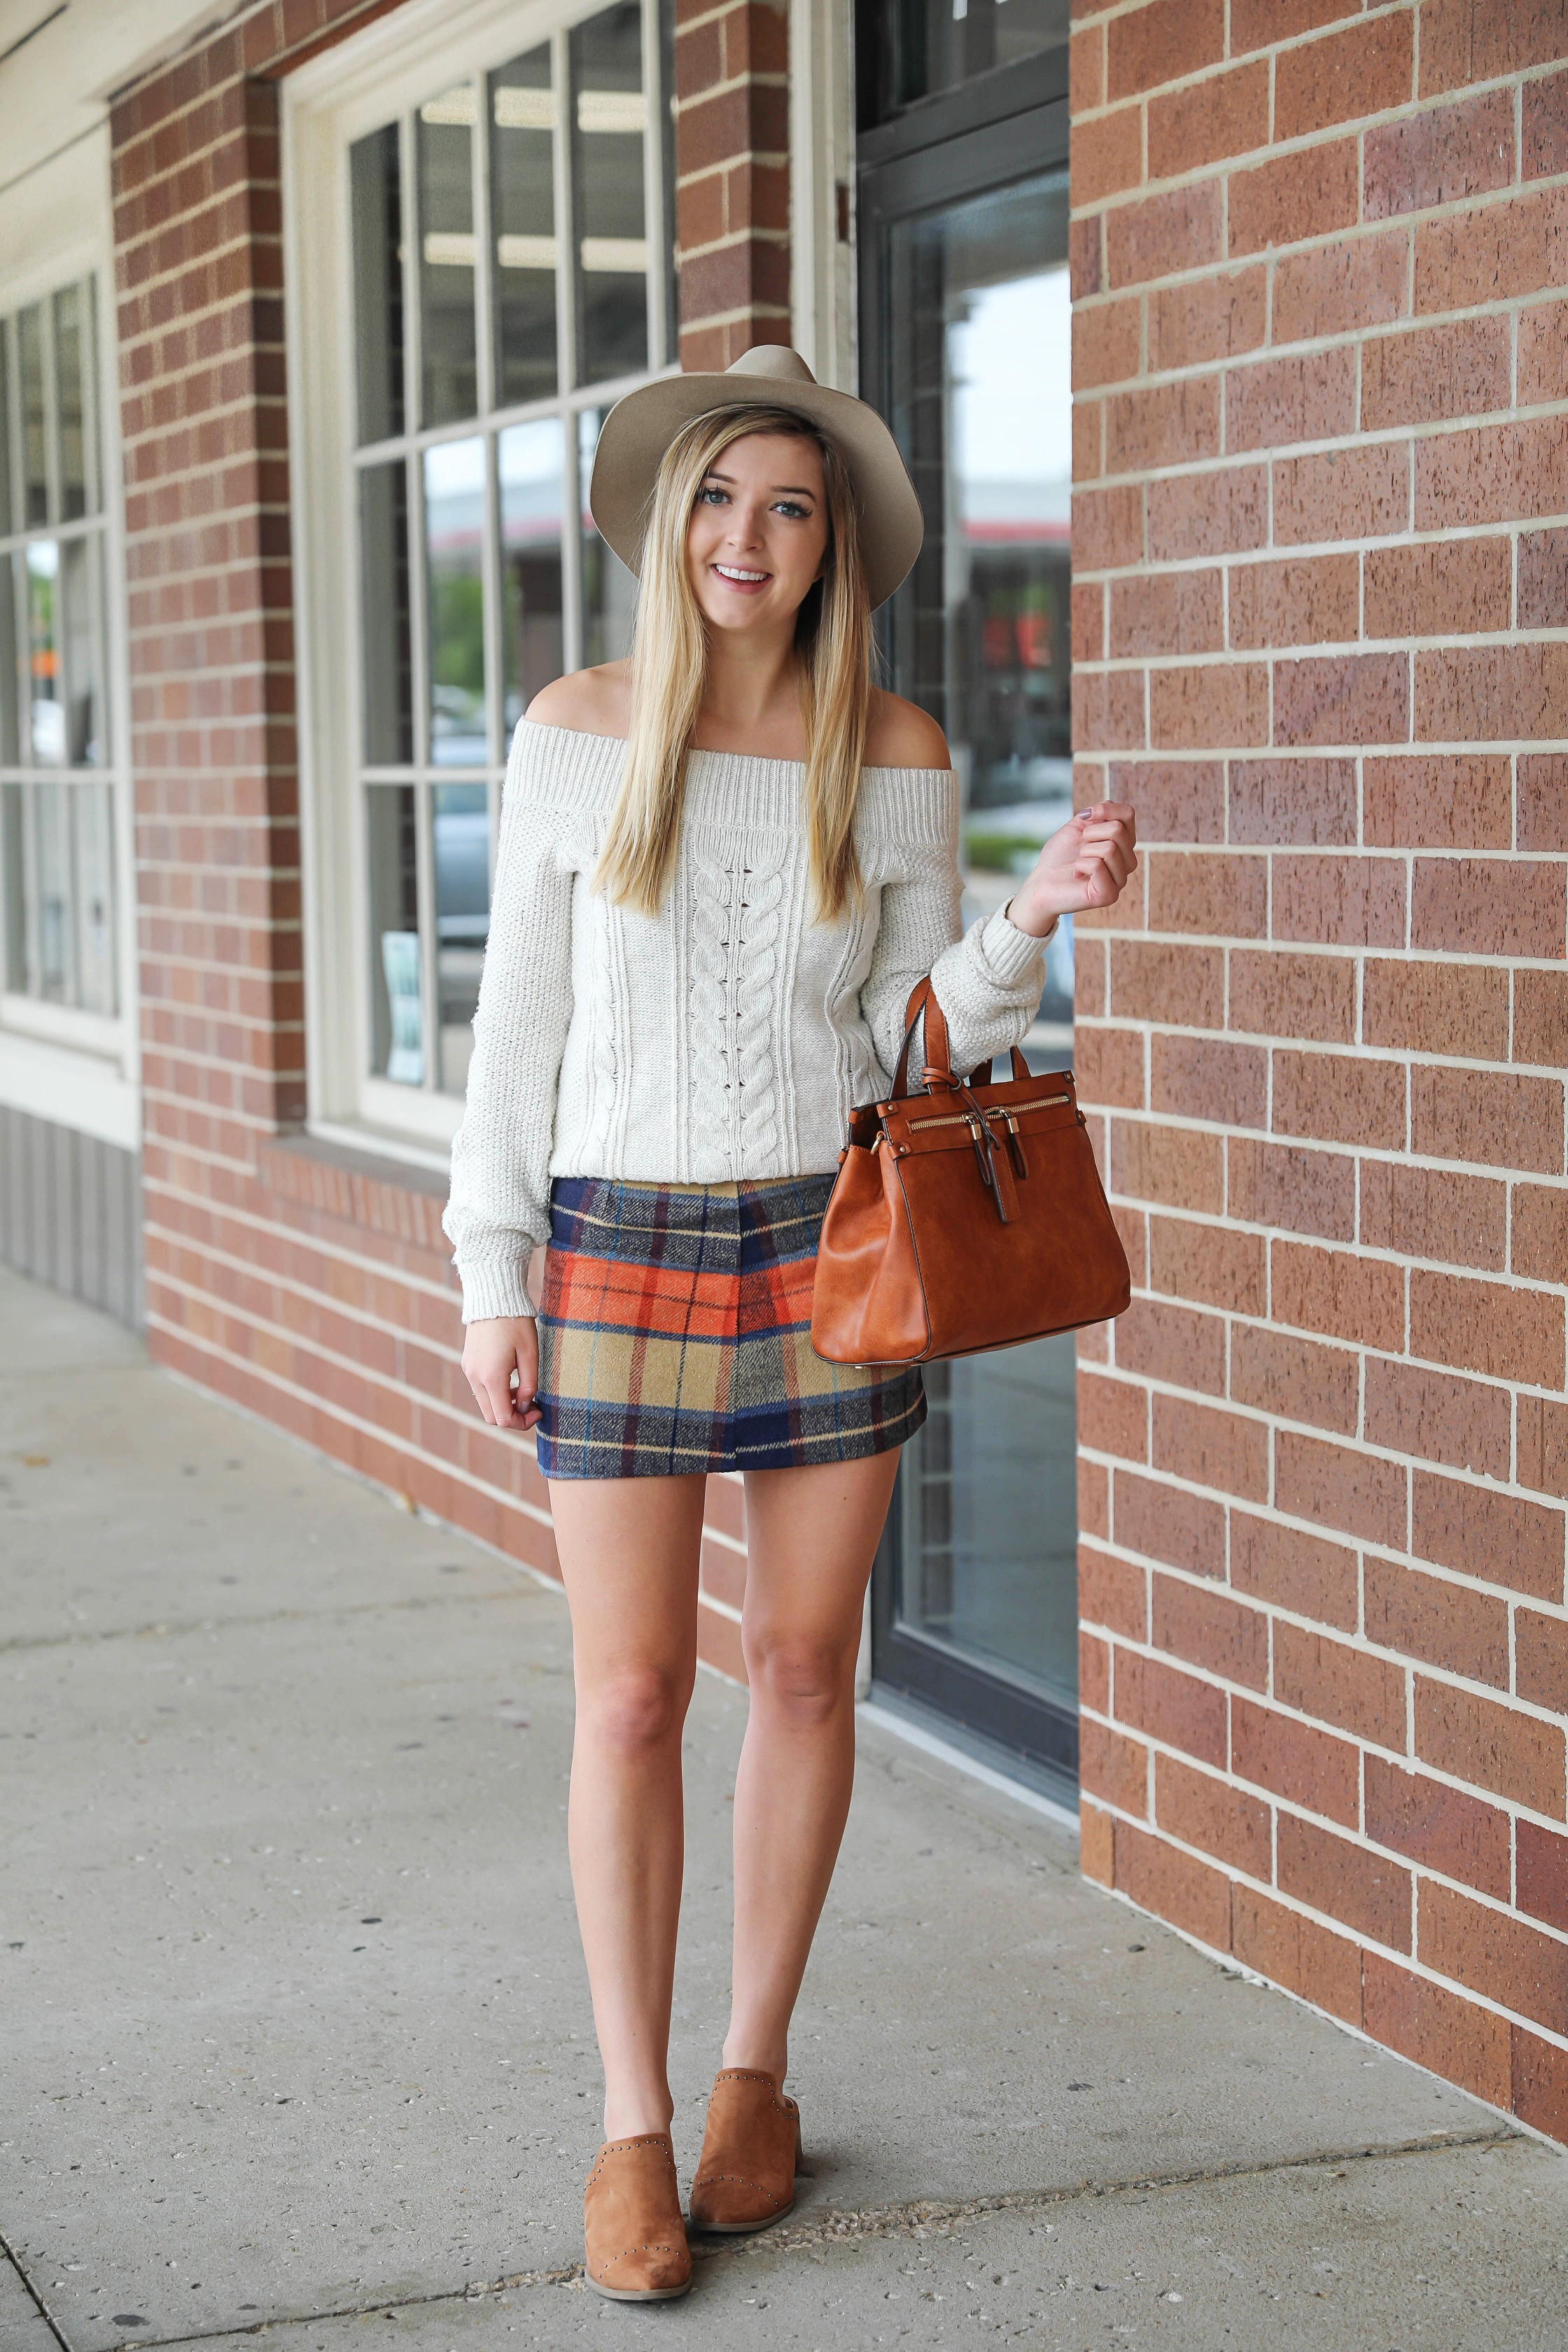 Plaid skirt with a cute cream knit off the shoulder sweater! The cutest fall outfit with a fun faux leather bag! Cute Abercrombie and Fitch and Lulu's fashion! Details on fashion blog daily dose of charm by Lauren Lindmark